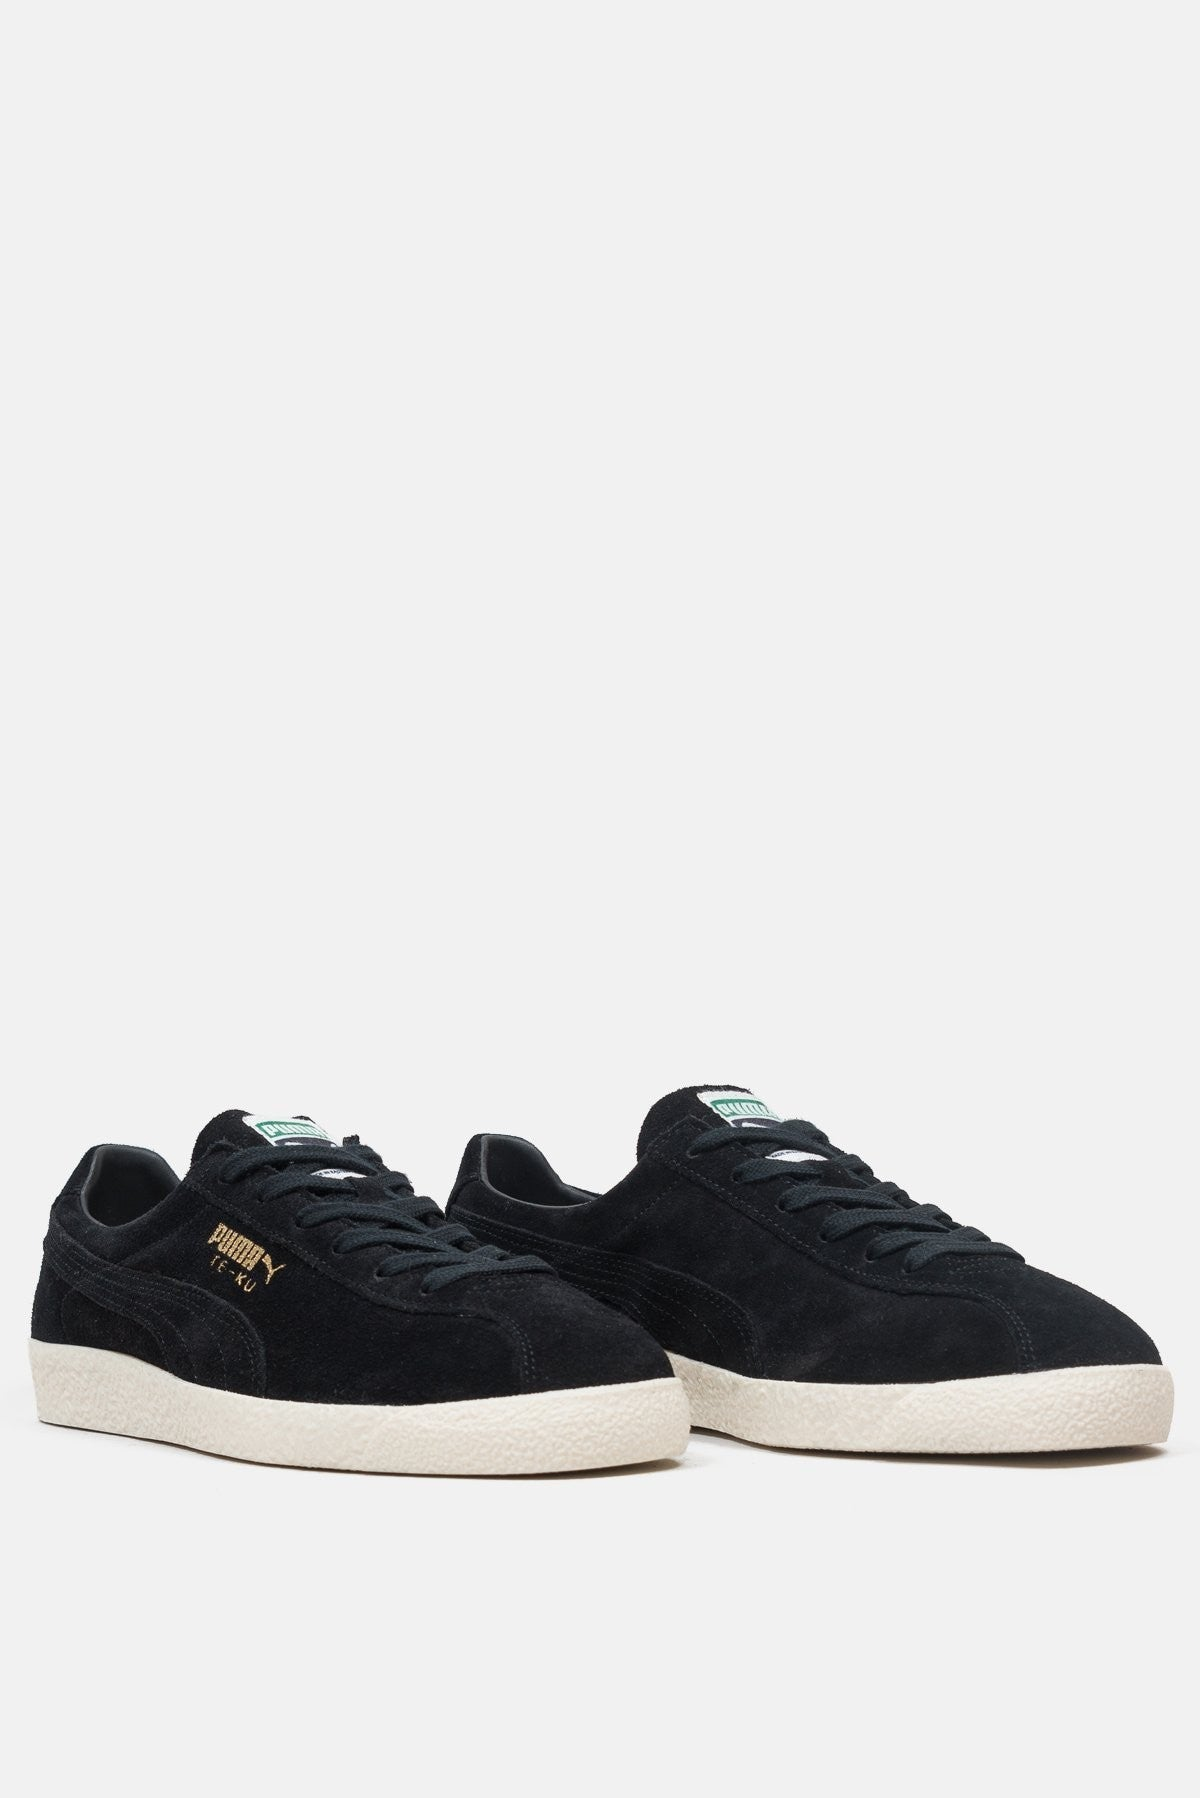 6b6266d91c528a Puma TE KU Shoes available from Priory